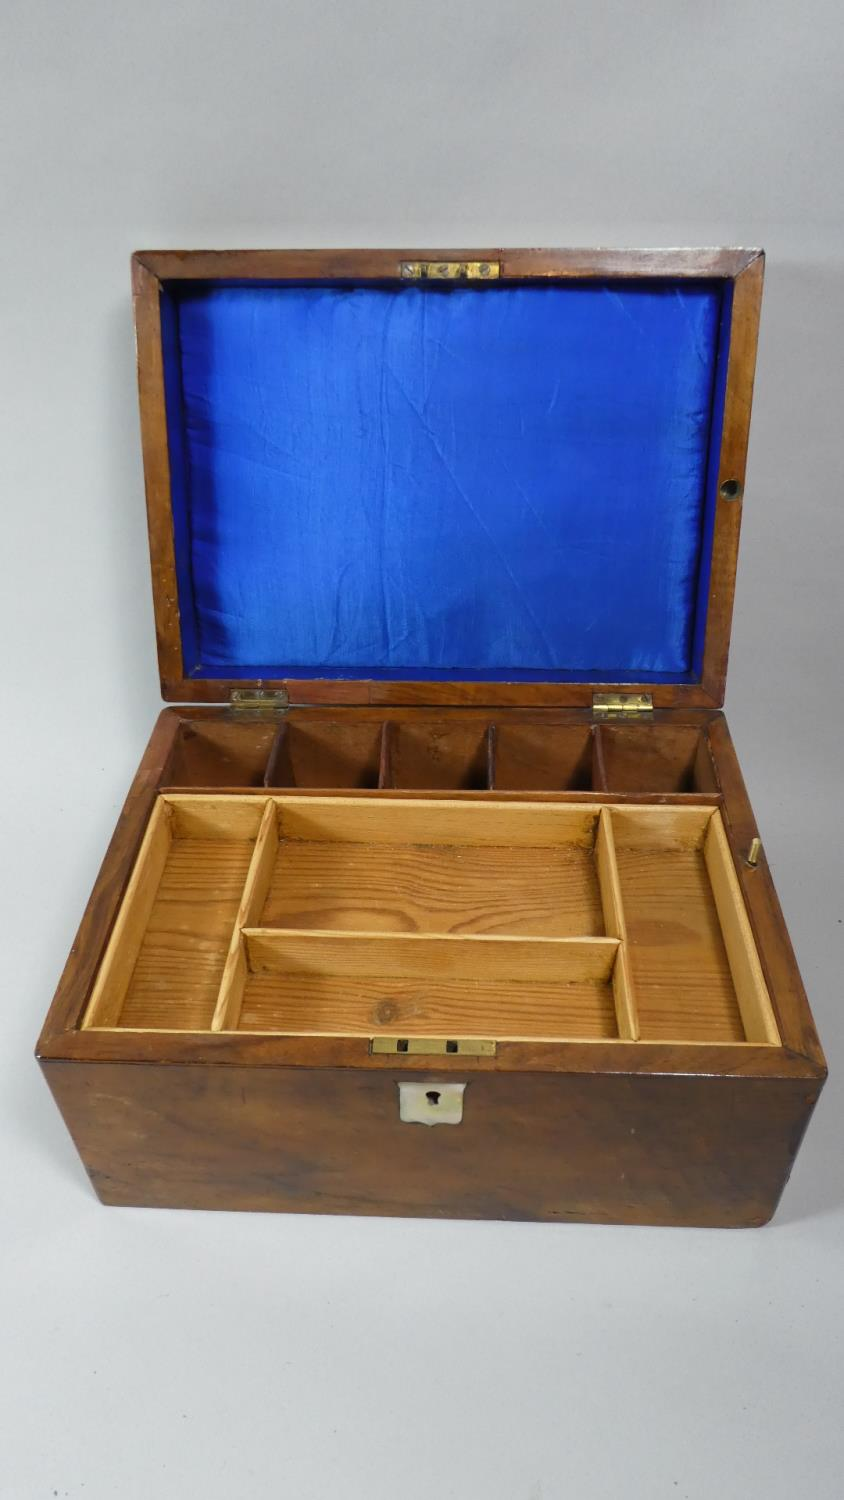 Lot 11 - A 19th Century Walnut Work Box with Removable Tray and Fitted Interior Secret Side Drawer, Mother of